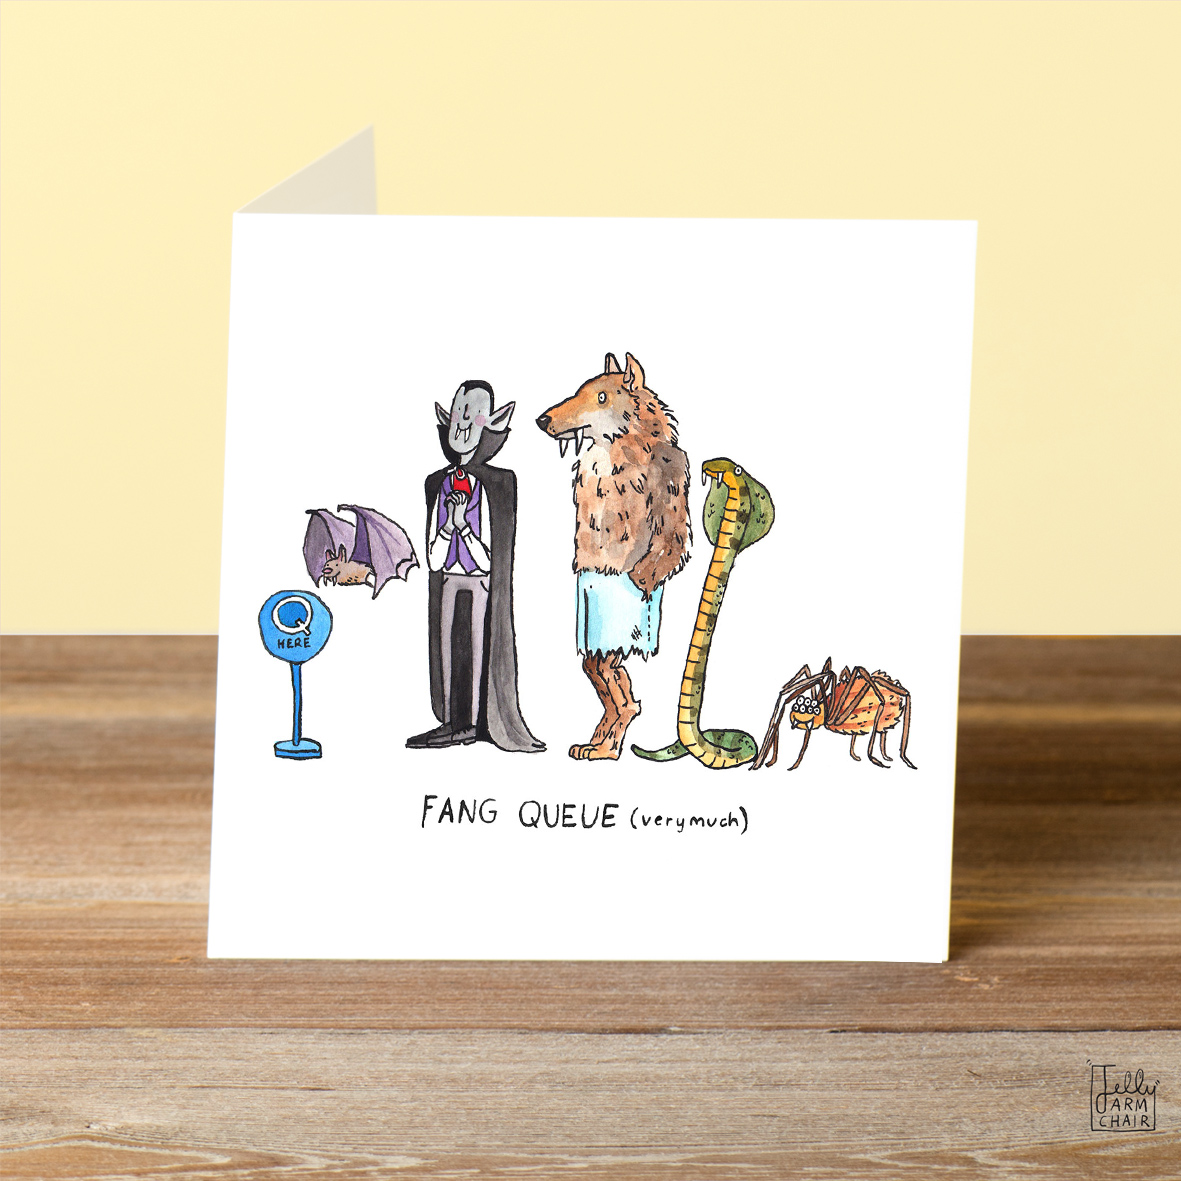 Fang-Queue_-Funny-Thank-you-greetings-card-with-Monster-puns_FW08_OT-